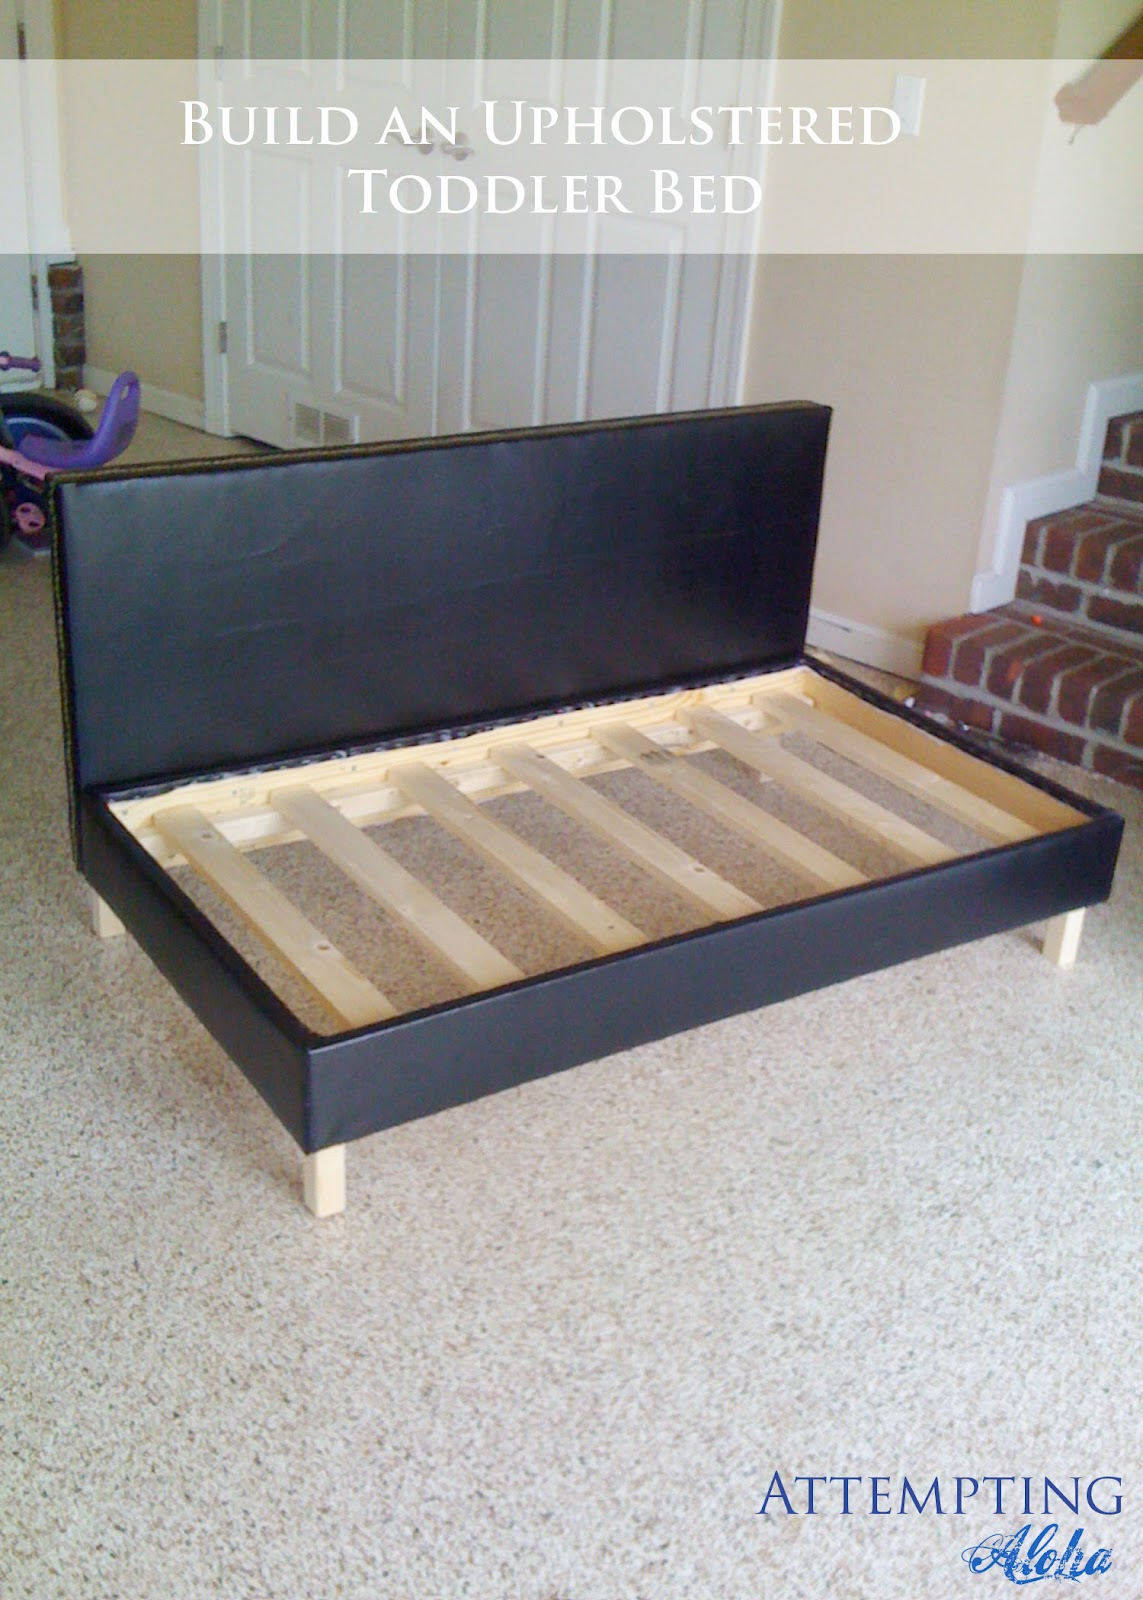 Attempting Aloha Diy Upholstered Toddler Bed Couch Plan Build Wooden Twin Frame